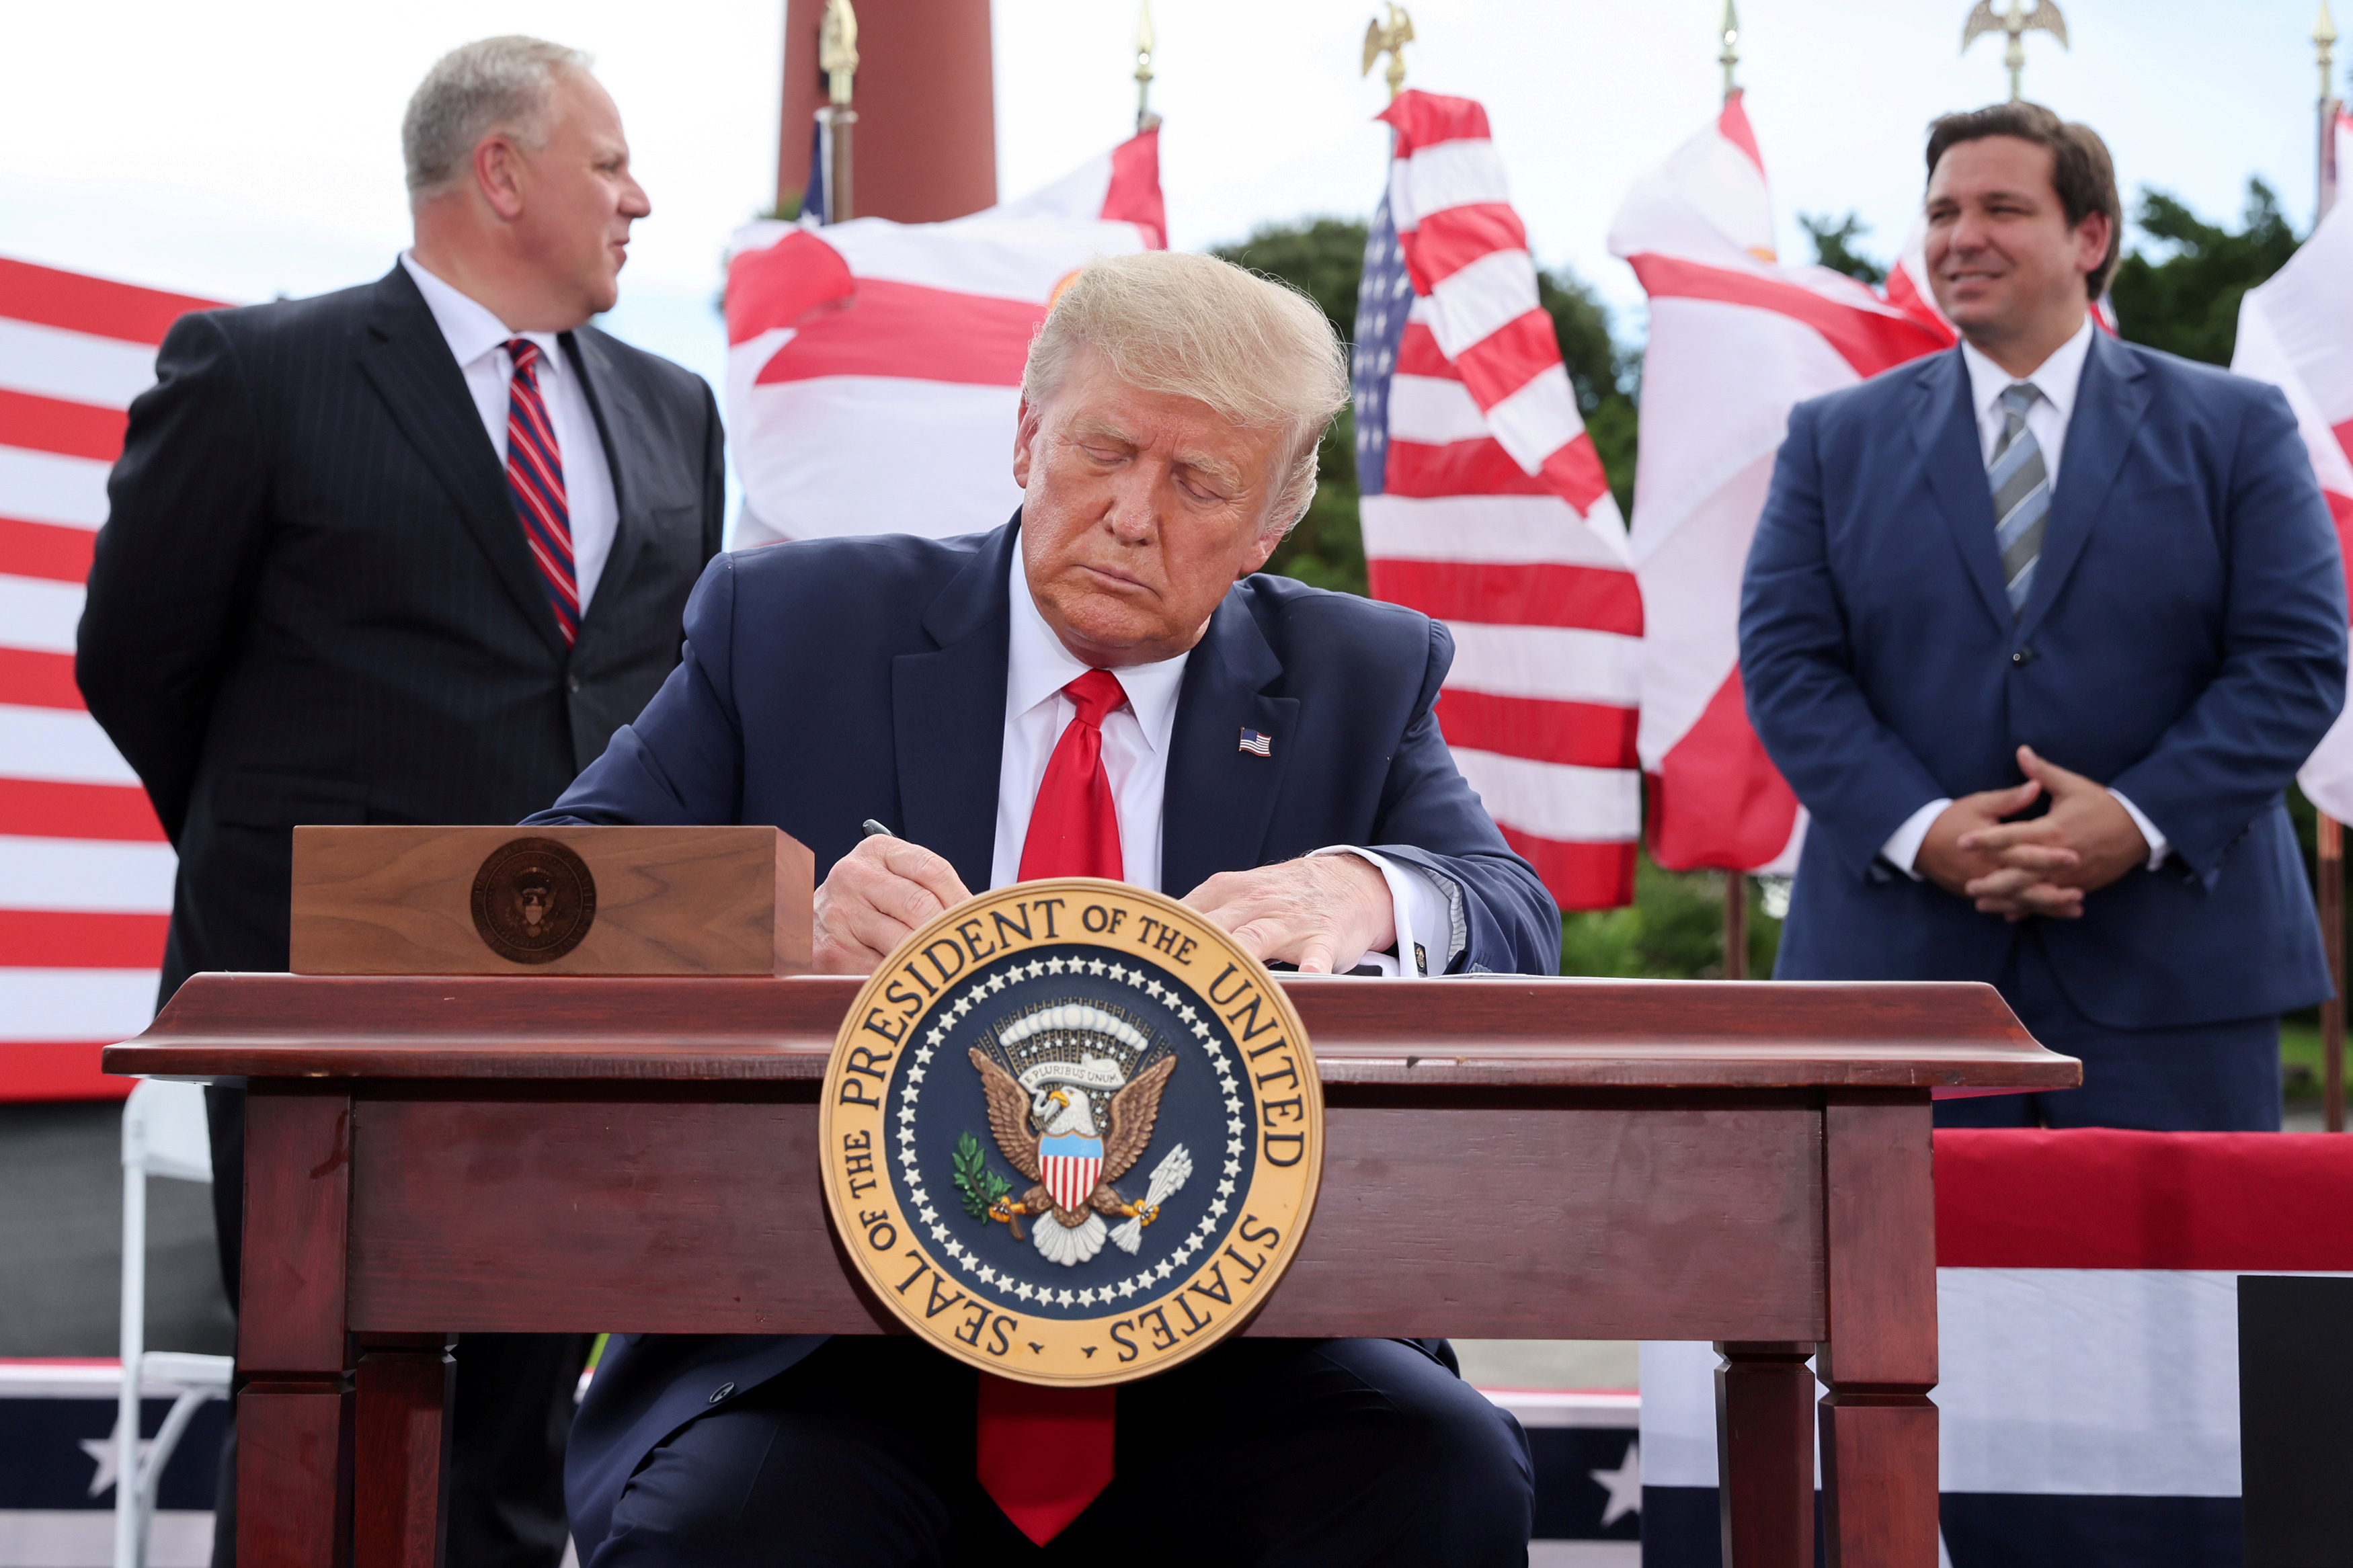 U.S. President Donald Trump signs an extension of the ban on offshore drilling off the coast of the state of Florida in front of a crowd of Trump supporters as U.S. Secretary of the Interior David Bernhardt and Florida Governor Ron DeSantis look on in Jupiter, Florida, U.S. September 8, 2020. REUTERS/Jonathan Ernst